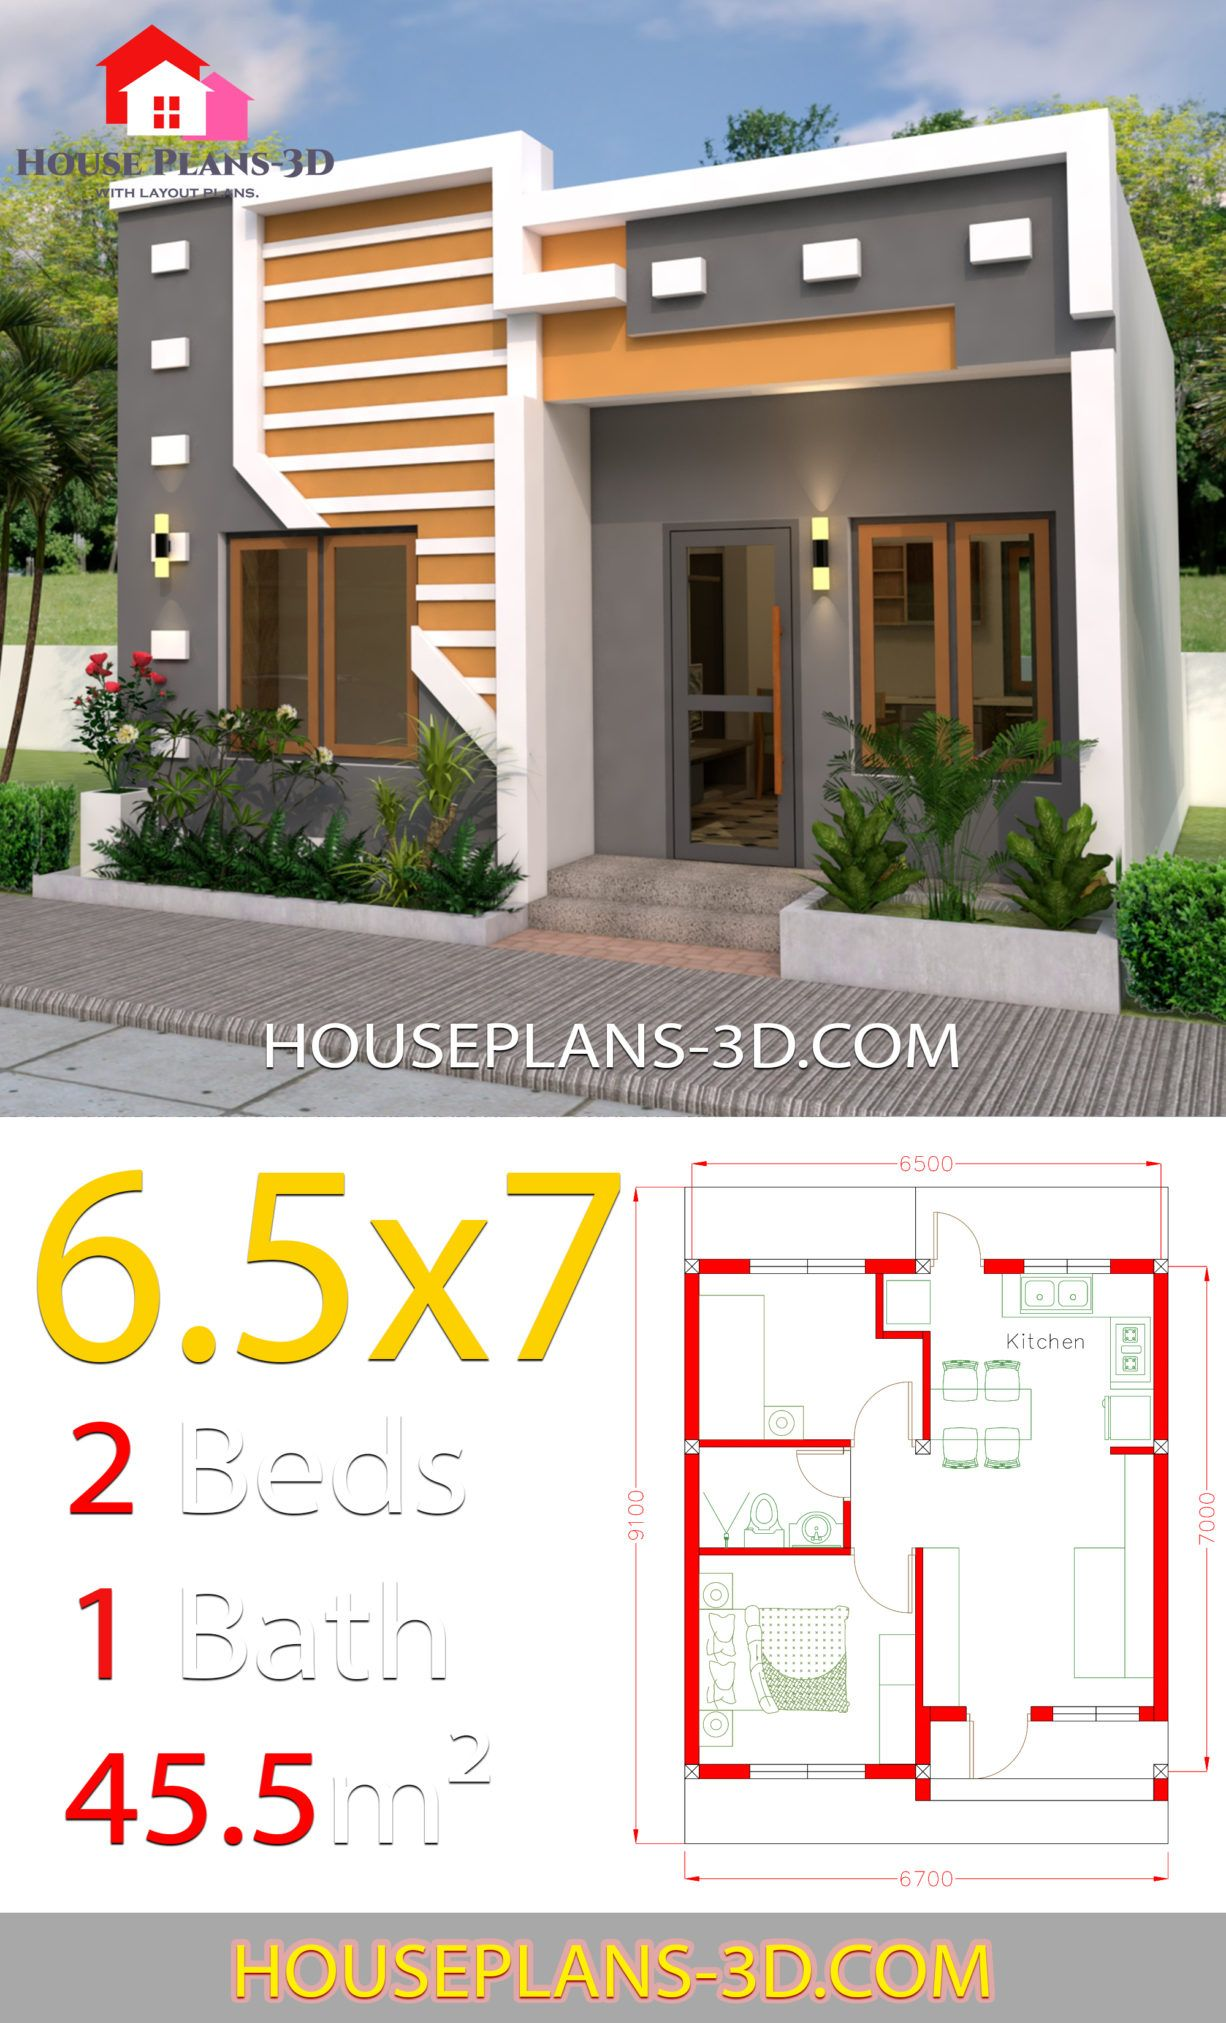 Small House Design 6 5x7 With 2 Bedrooms Full Plans House Plans 3d Small House Design Plans Small House Design House Front Design